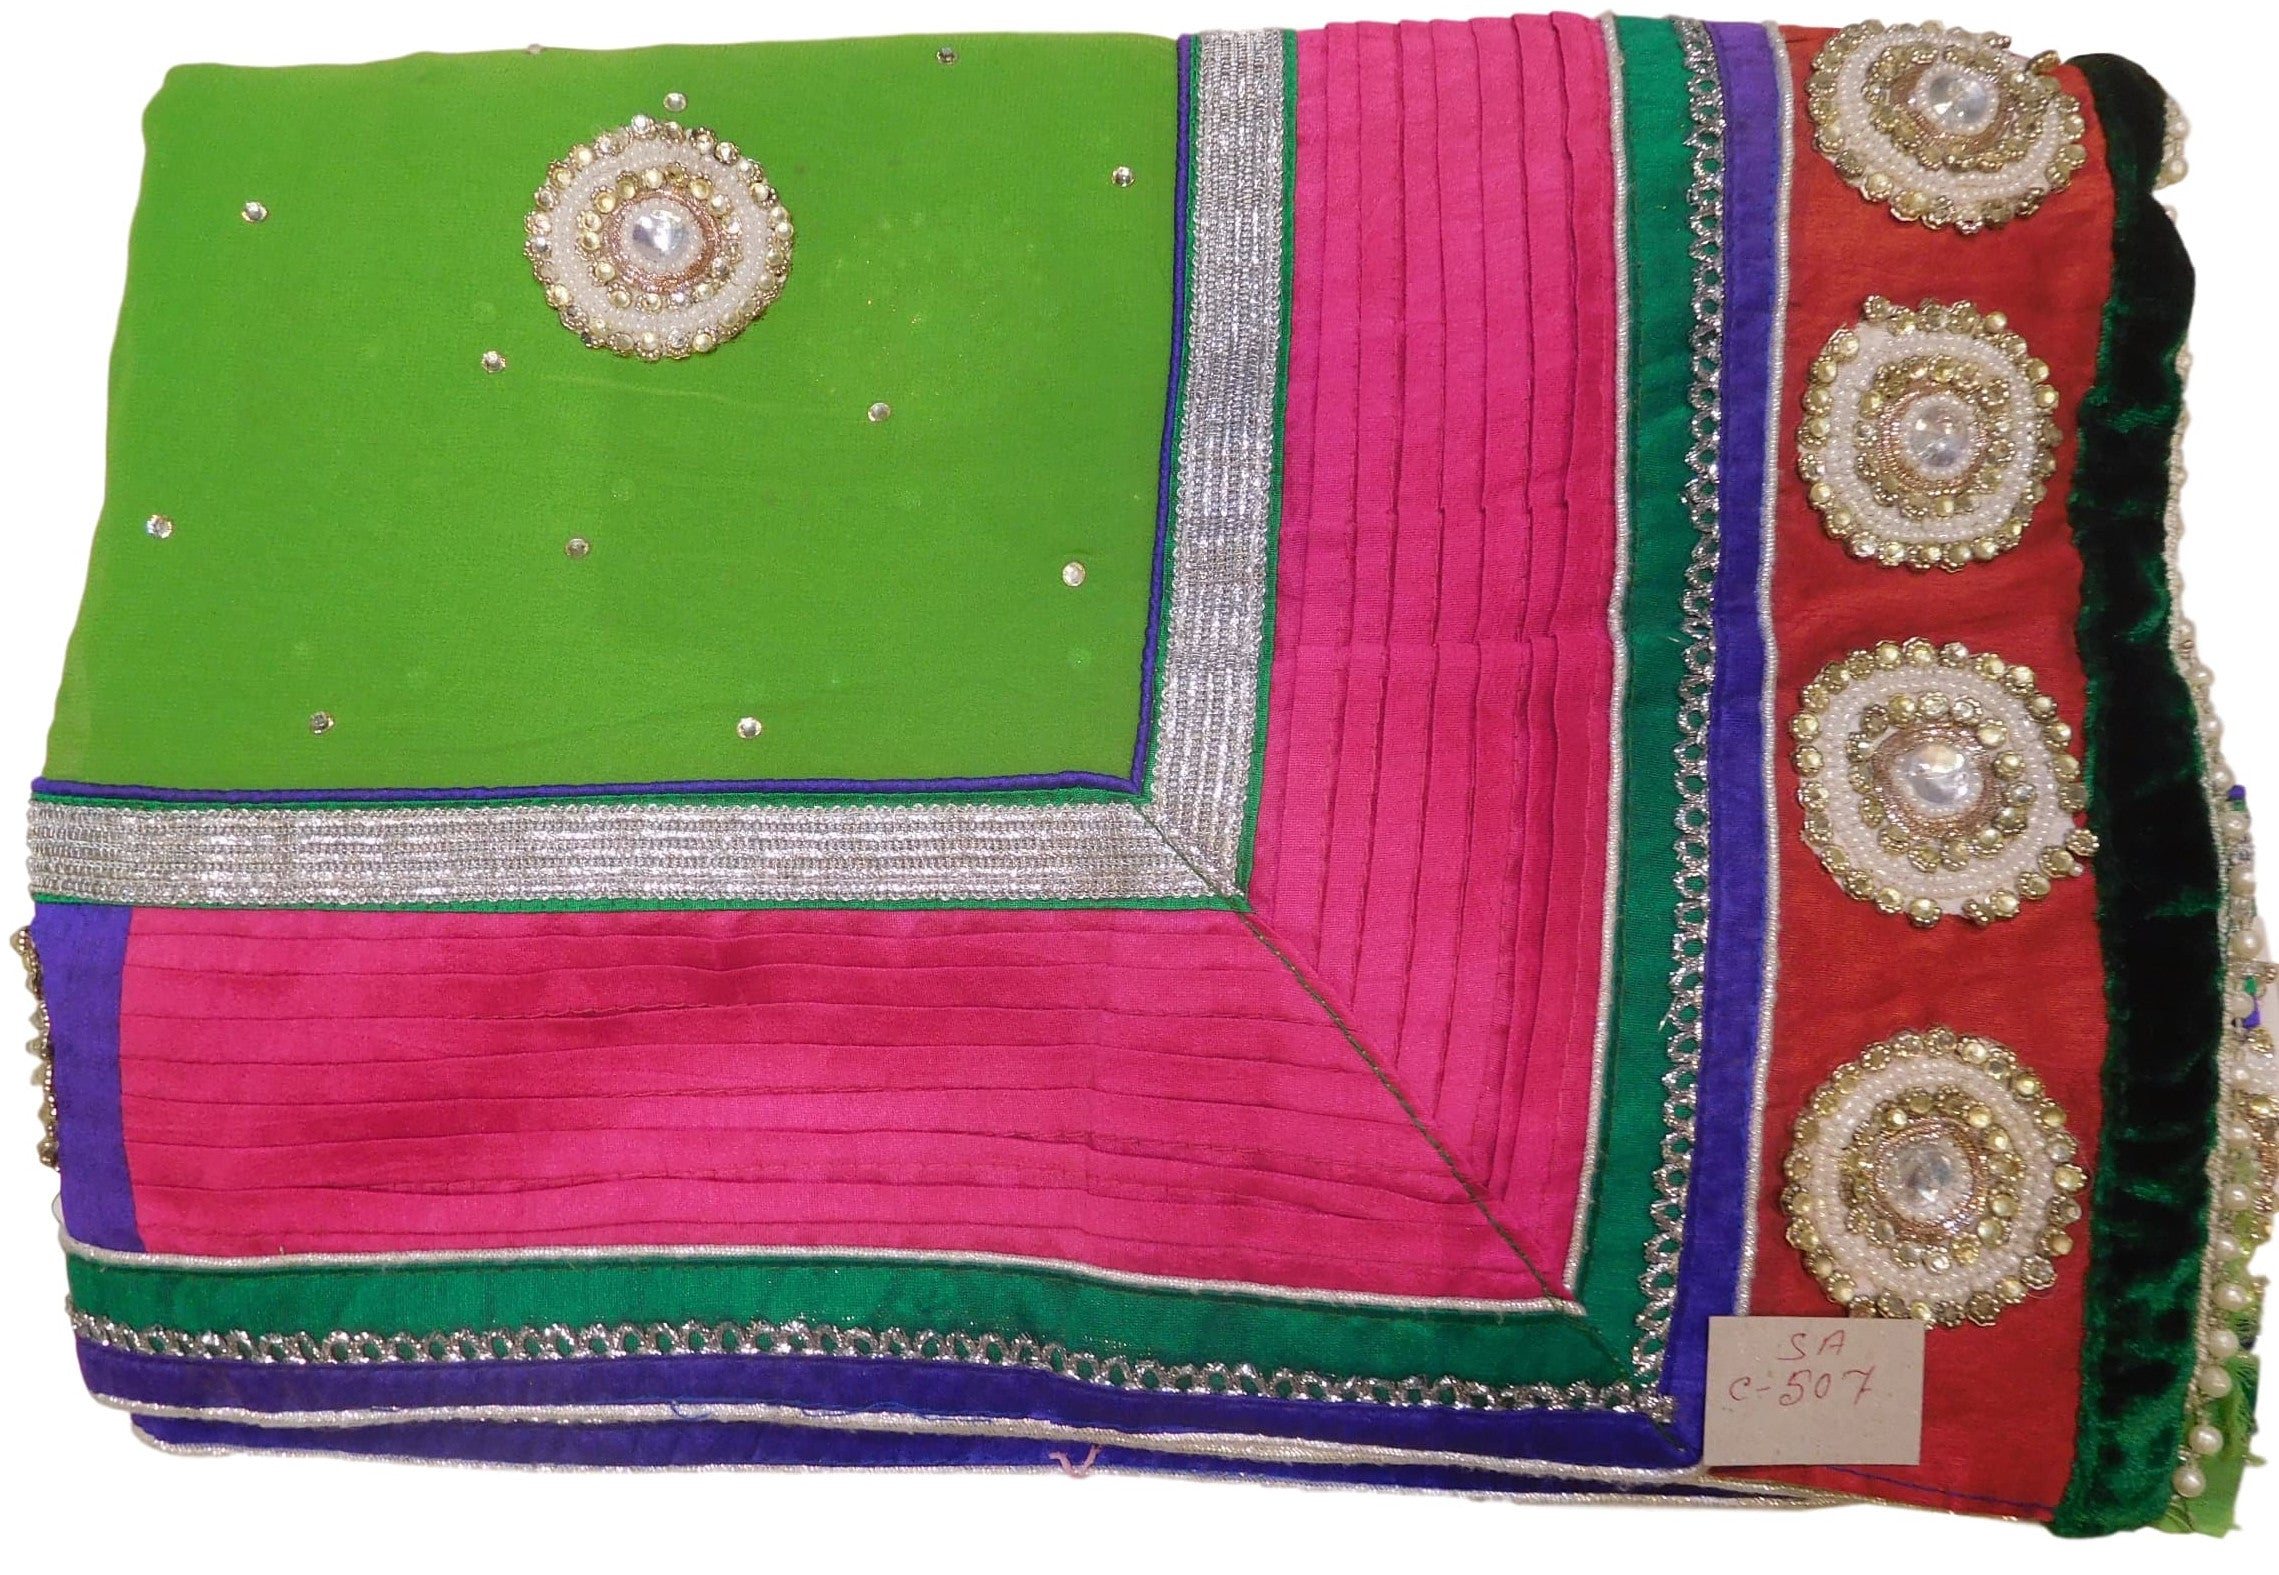 Green Designer Georgette (Viscos) Hand Embroidery Work Saree Sari